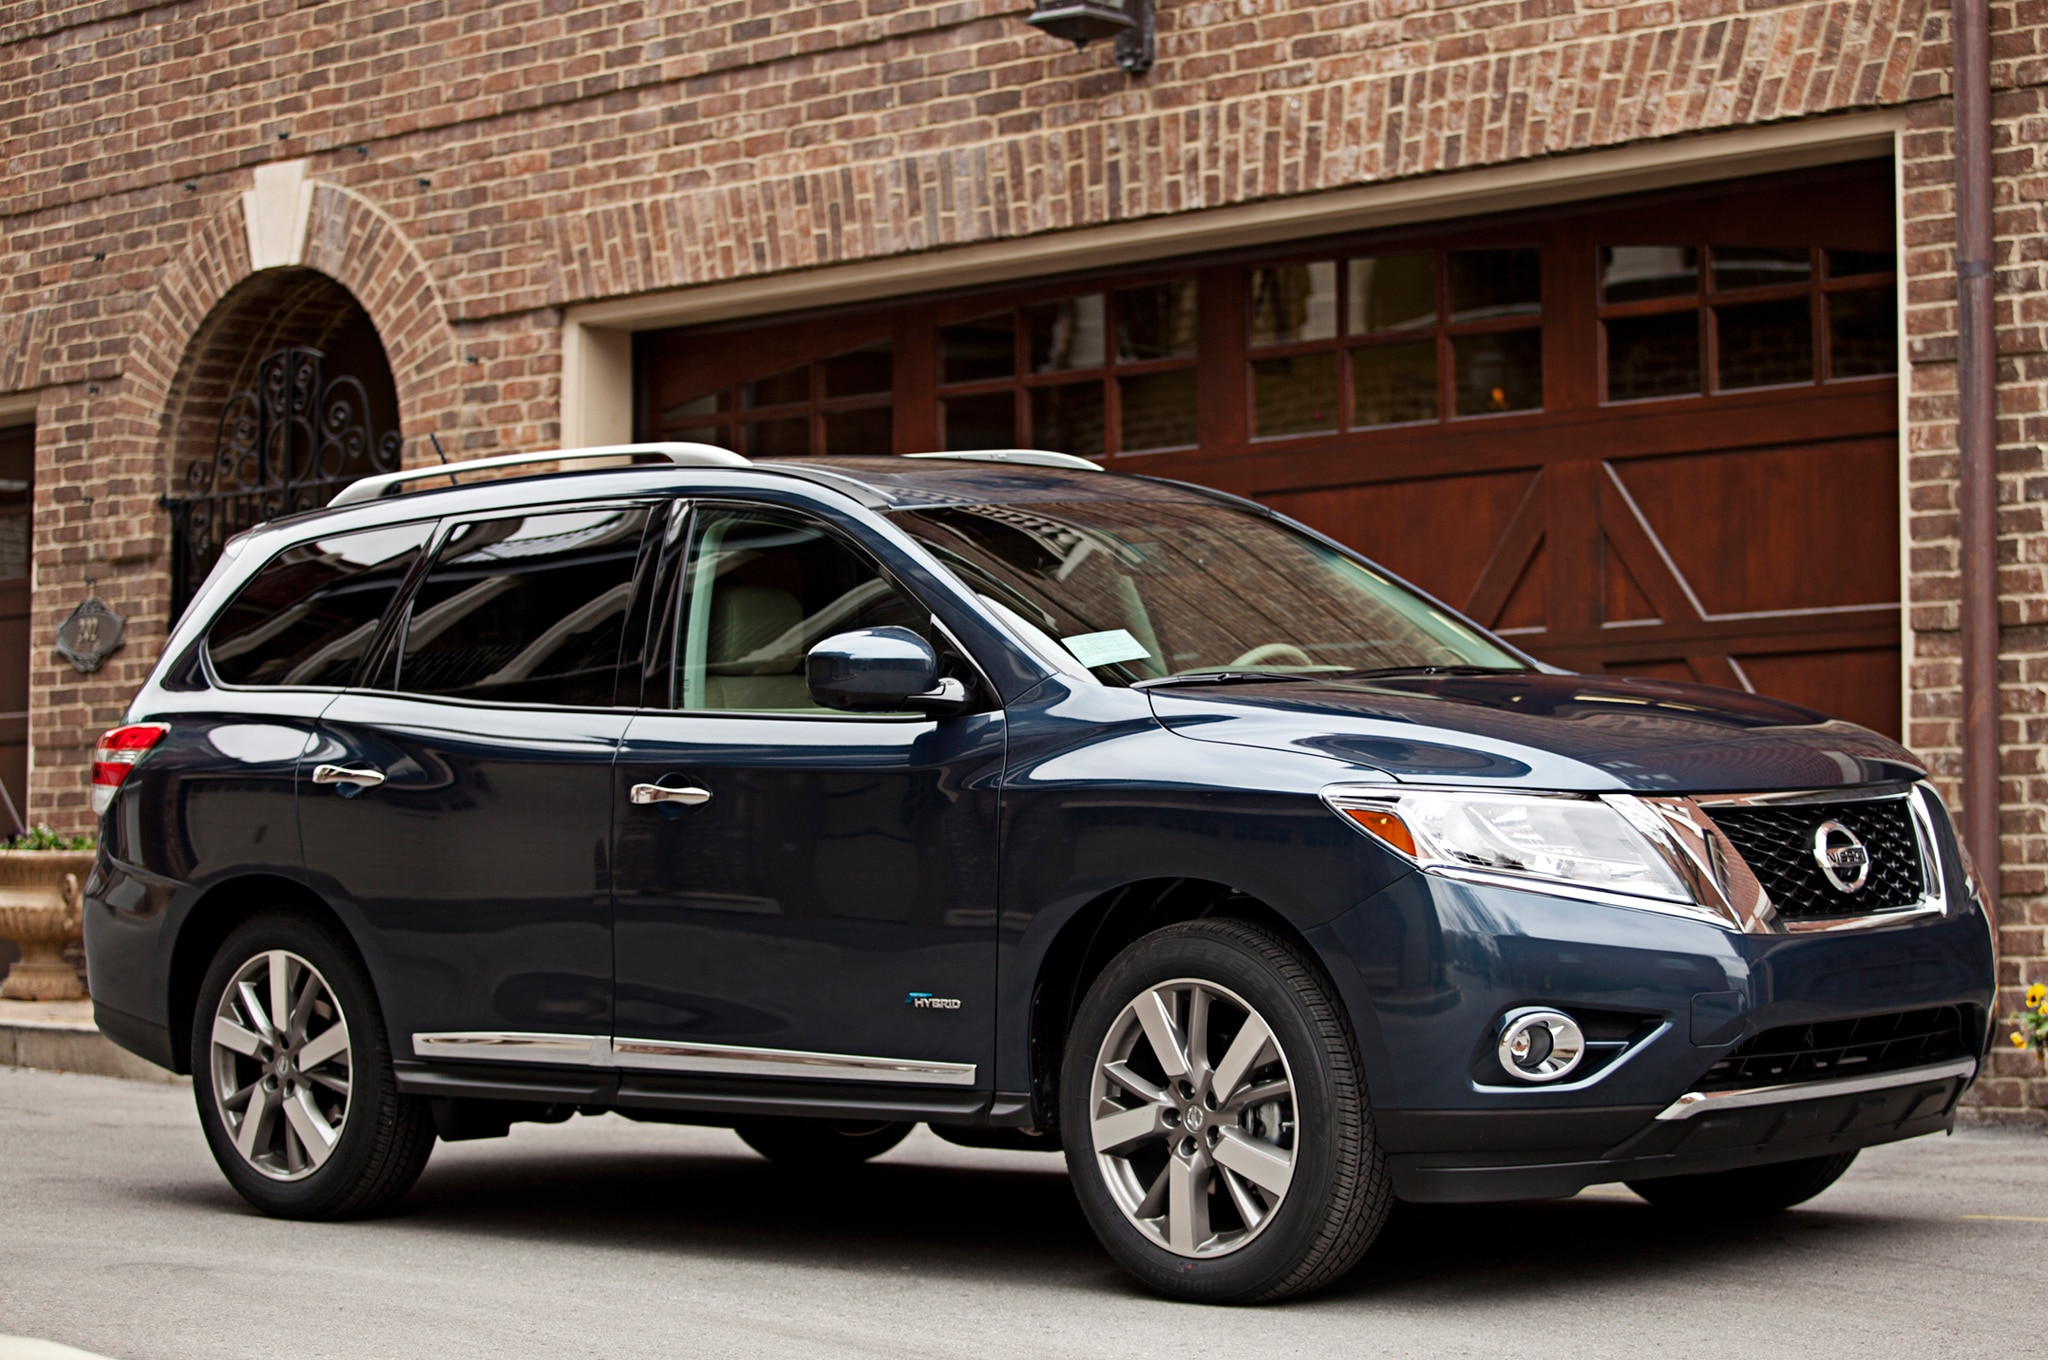 2014 nissan pathfinder hybrid review automobile magazine according to nissans vanachro Image collections